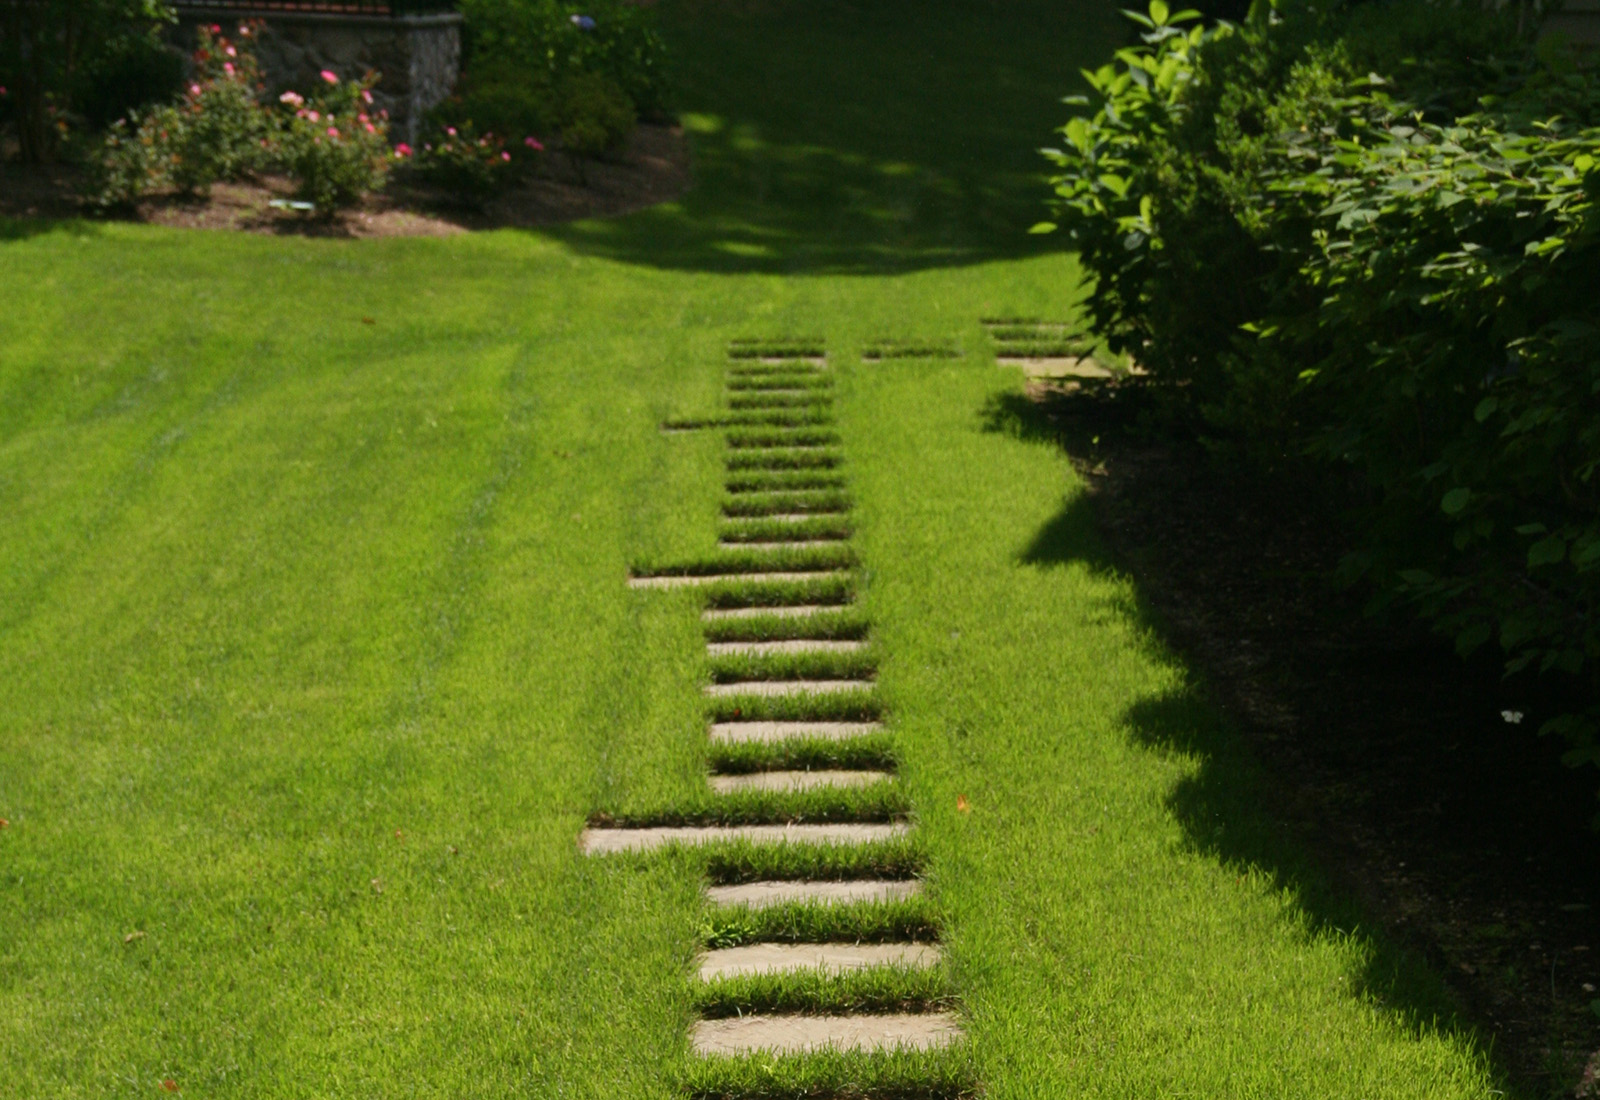 Formal pathway through the lawn.